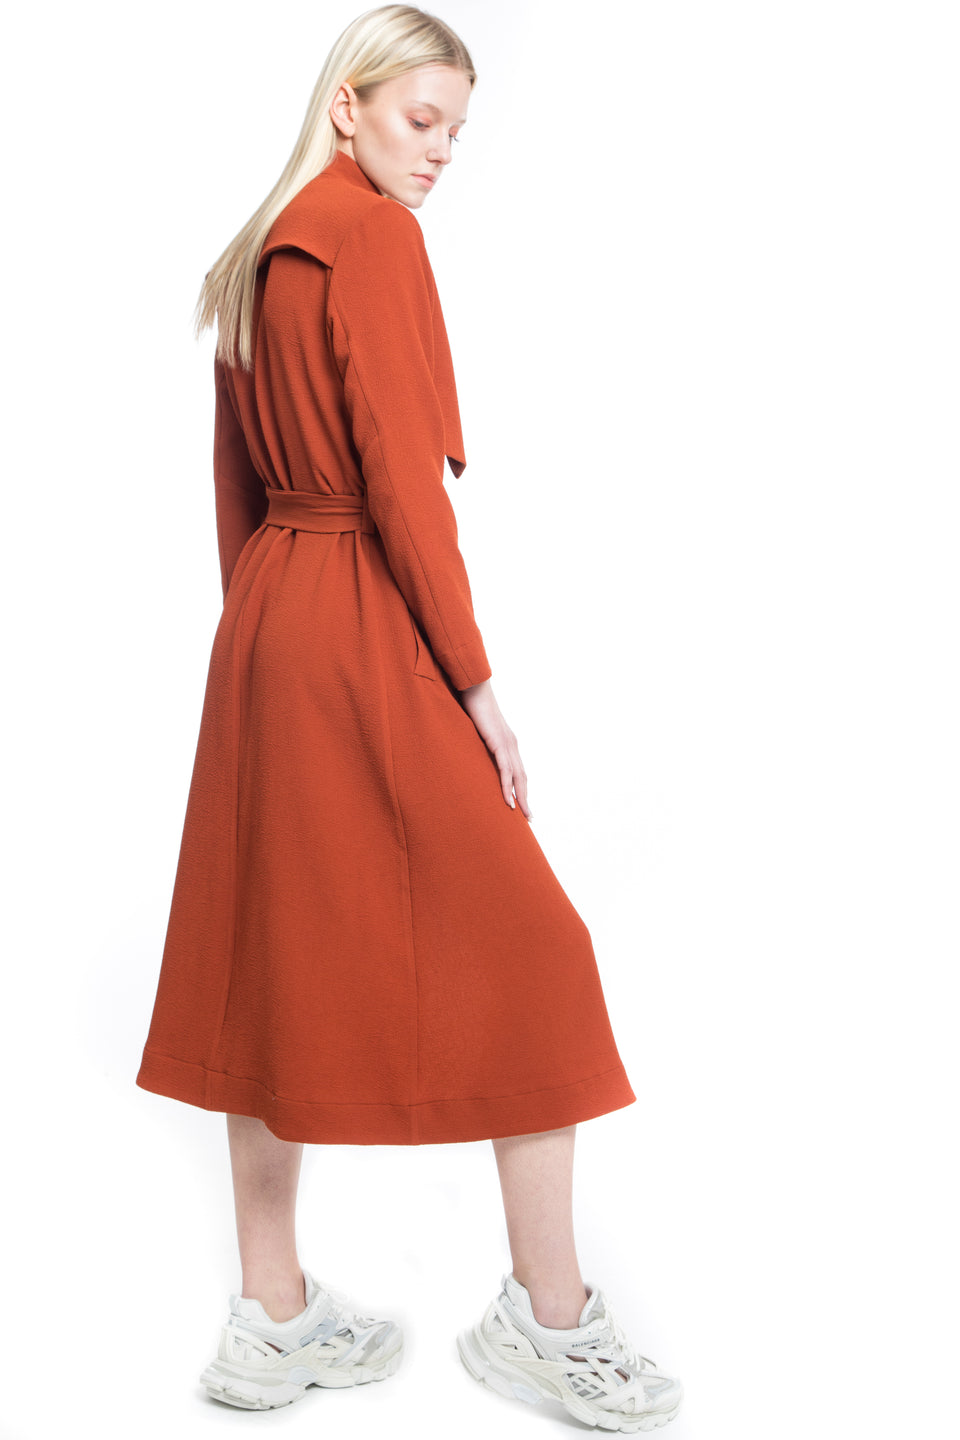 NINObrand Milan Rust color long sleeve trench coat